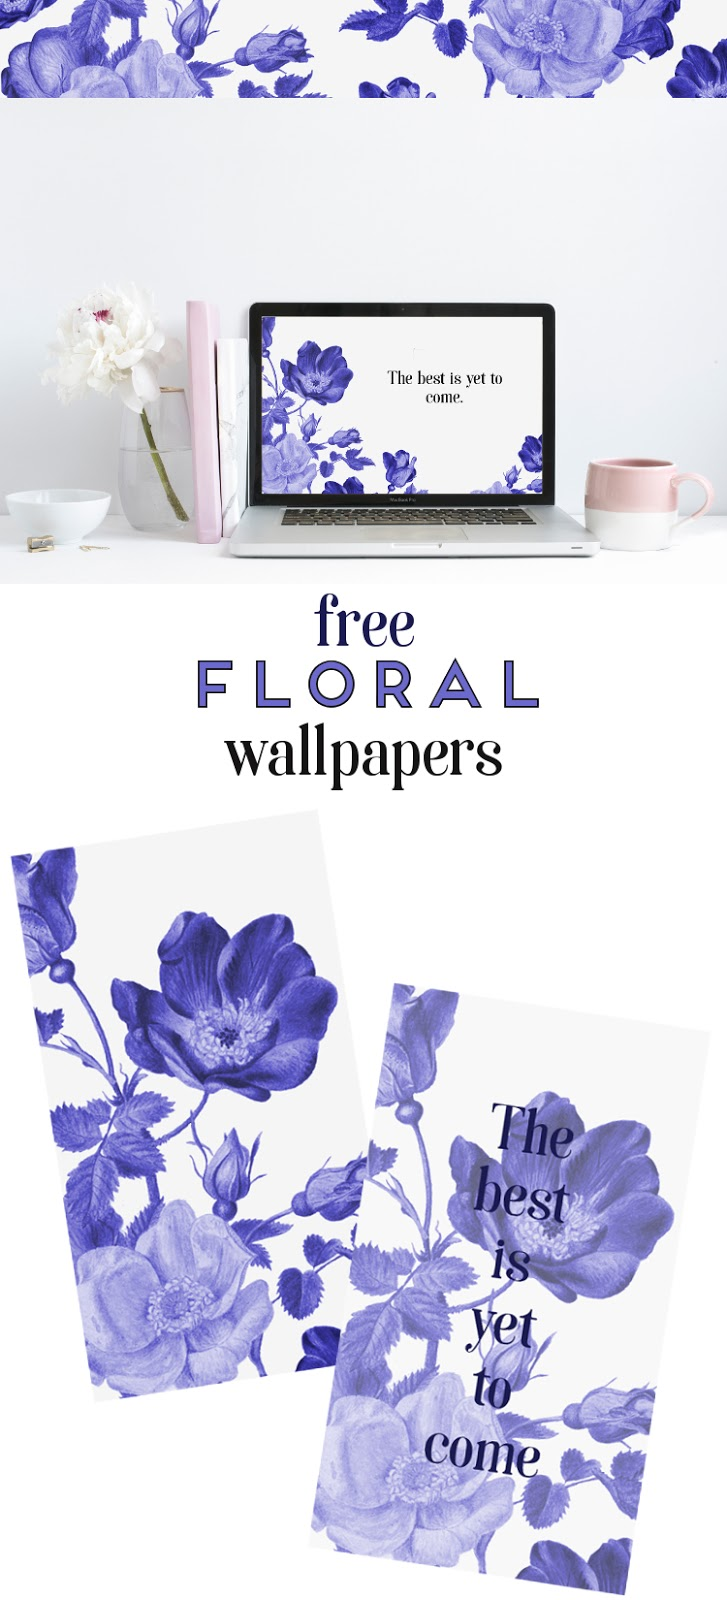 FREE INKY BLUE FLORAL WALLPAPERS.